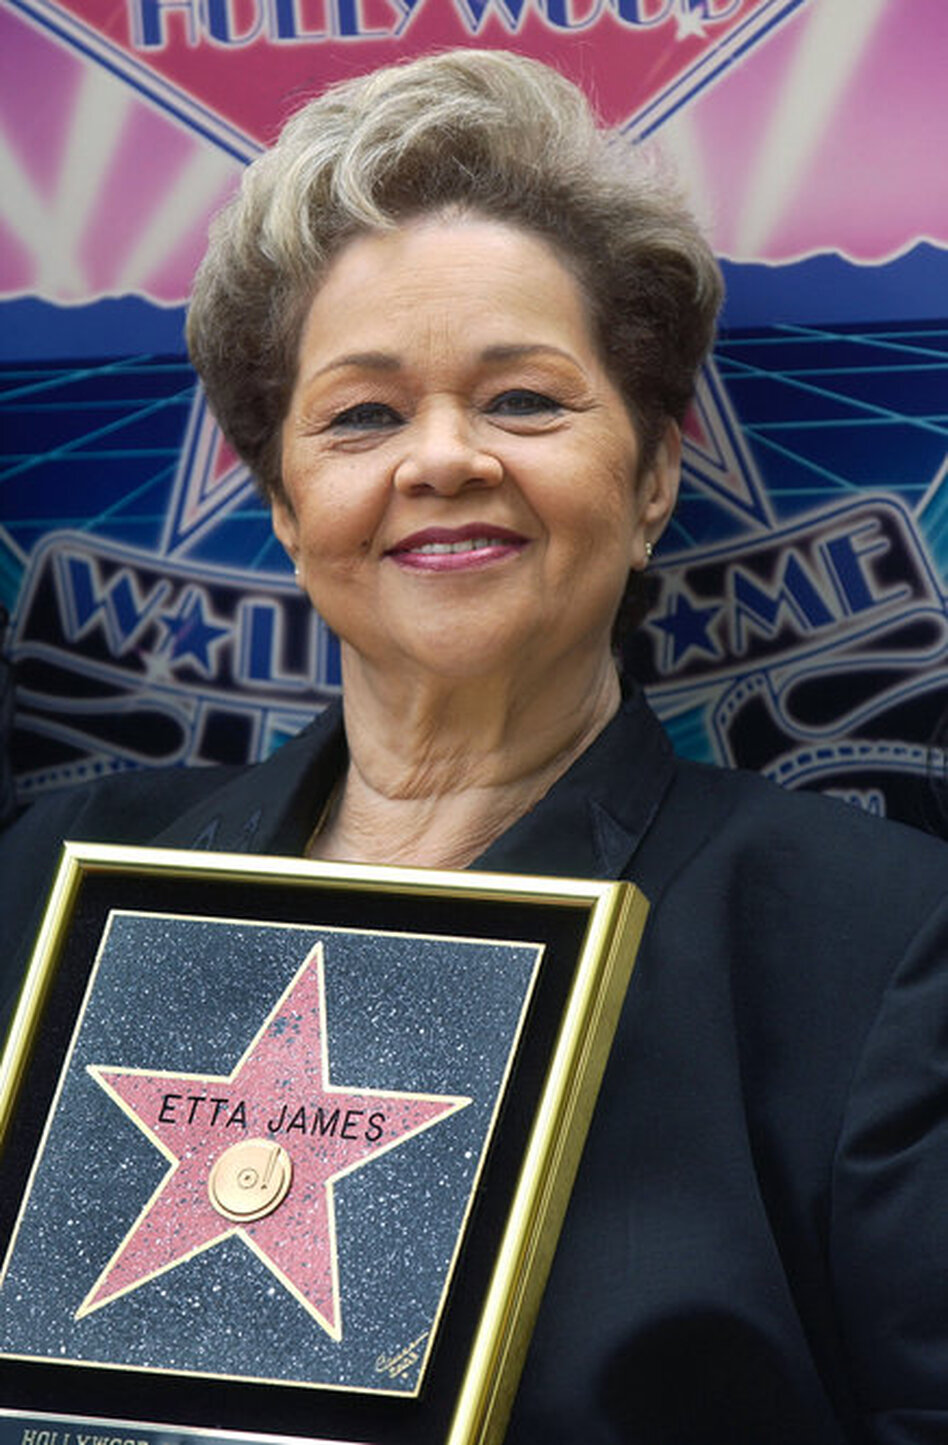 Singer Etta James displays her star during a ceremony honoring her on the Hollywood Walk of Fame April 18, 2003 in Hollywood, California.  (Getty Images)